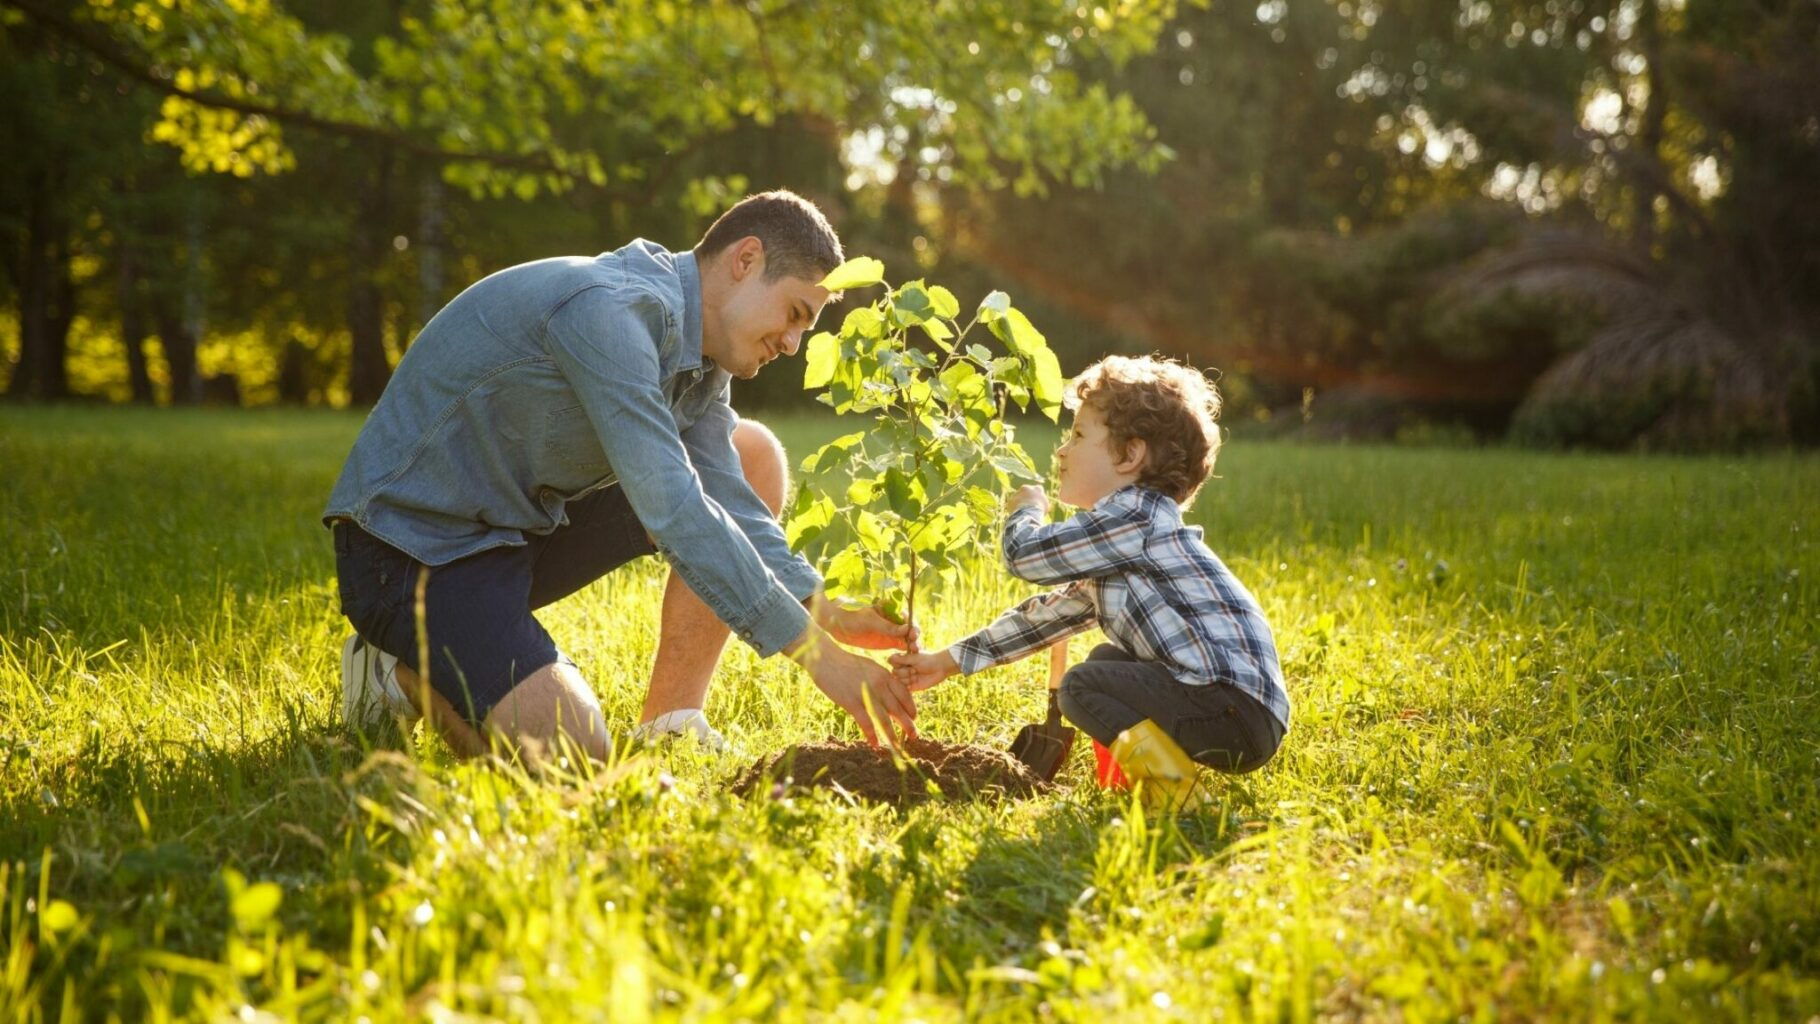 parent and child caring for a young tree